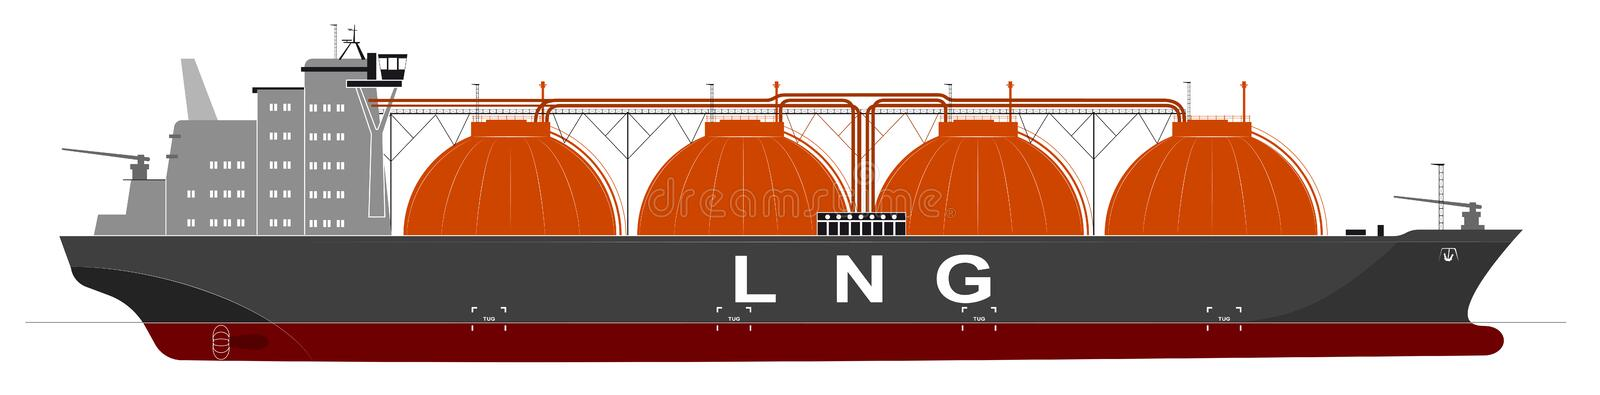 Silhouette of a huge ocean tanker for liquefied gas. Traced details. Side view. Silhouette of a huge ocean tanker for liquefied gas. Traced details stock illustration